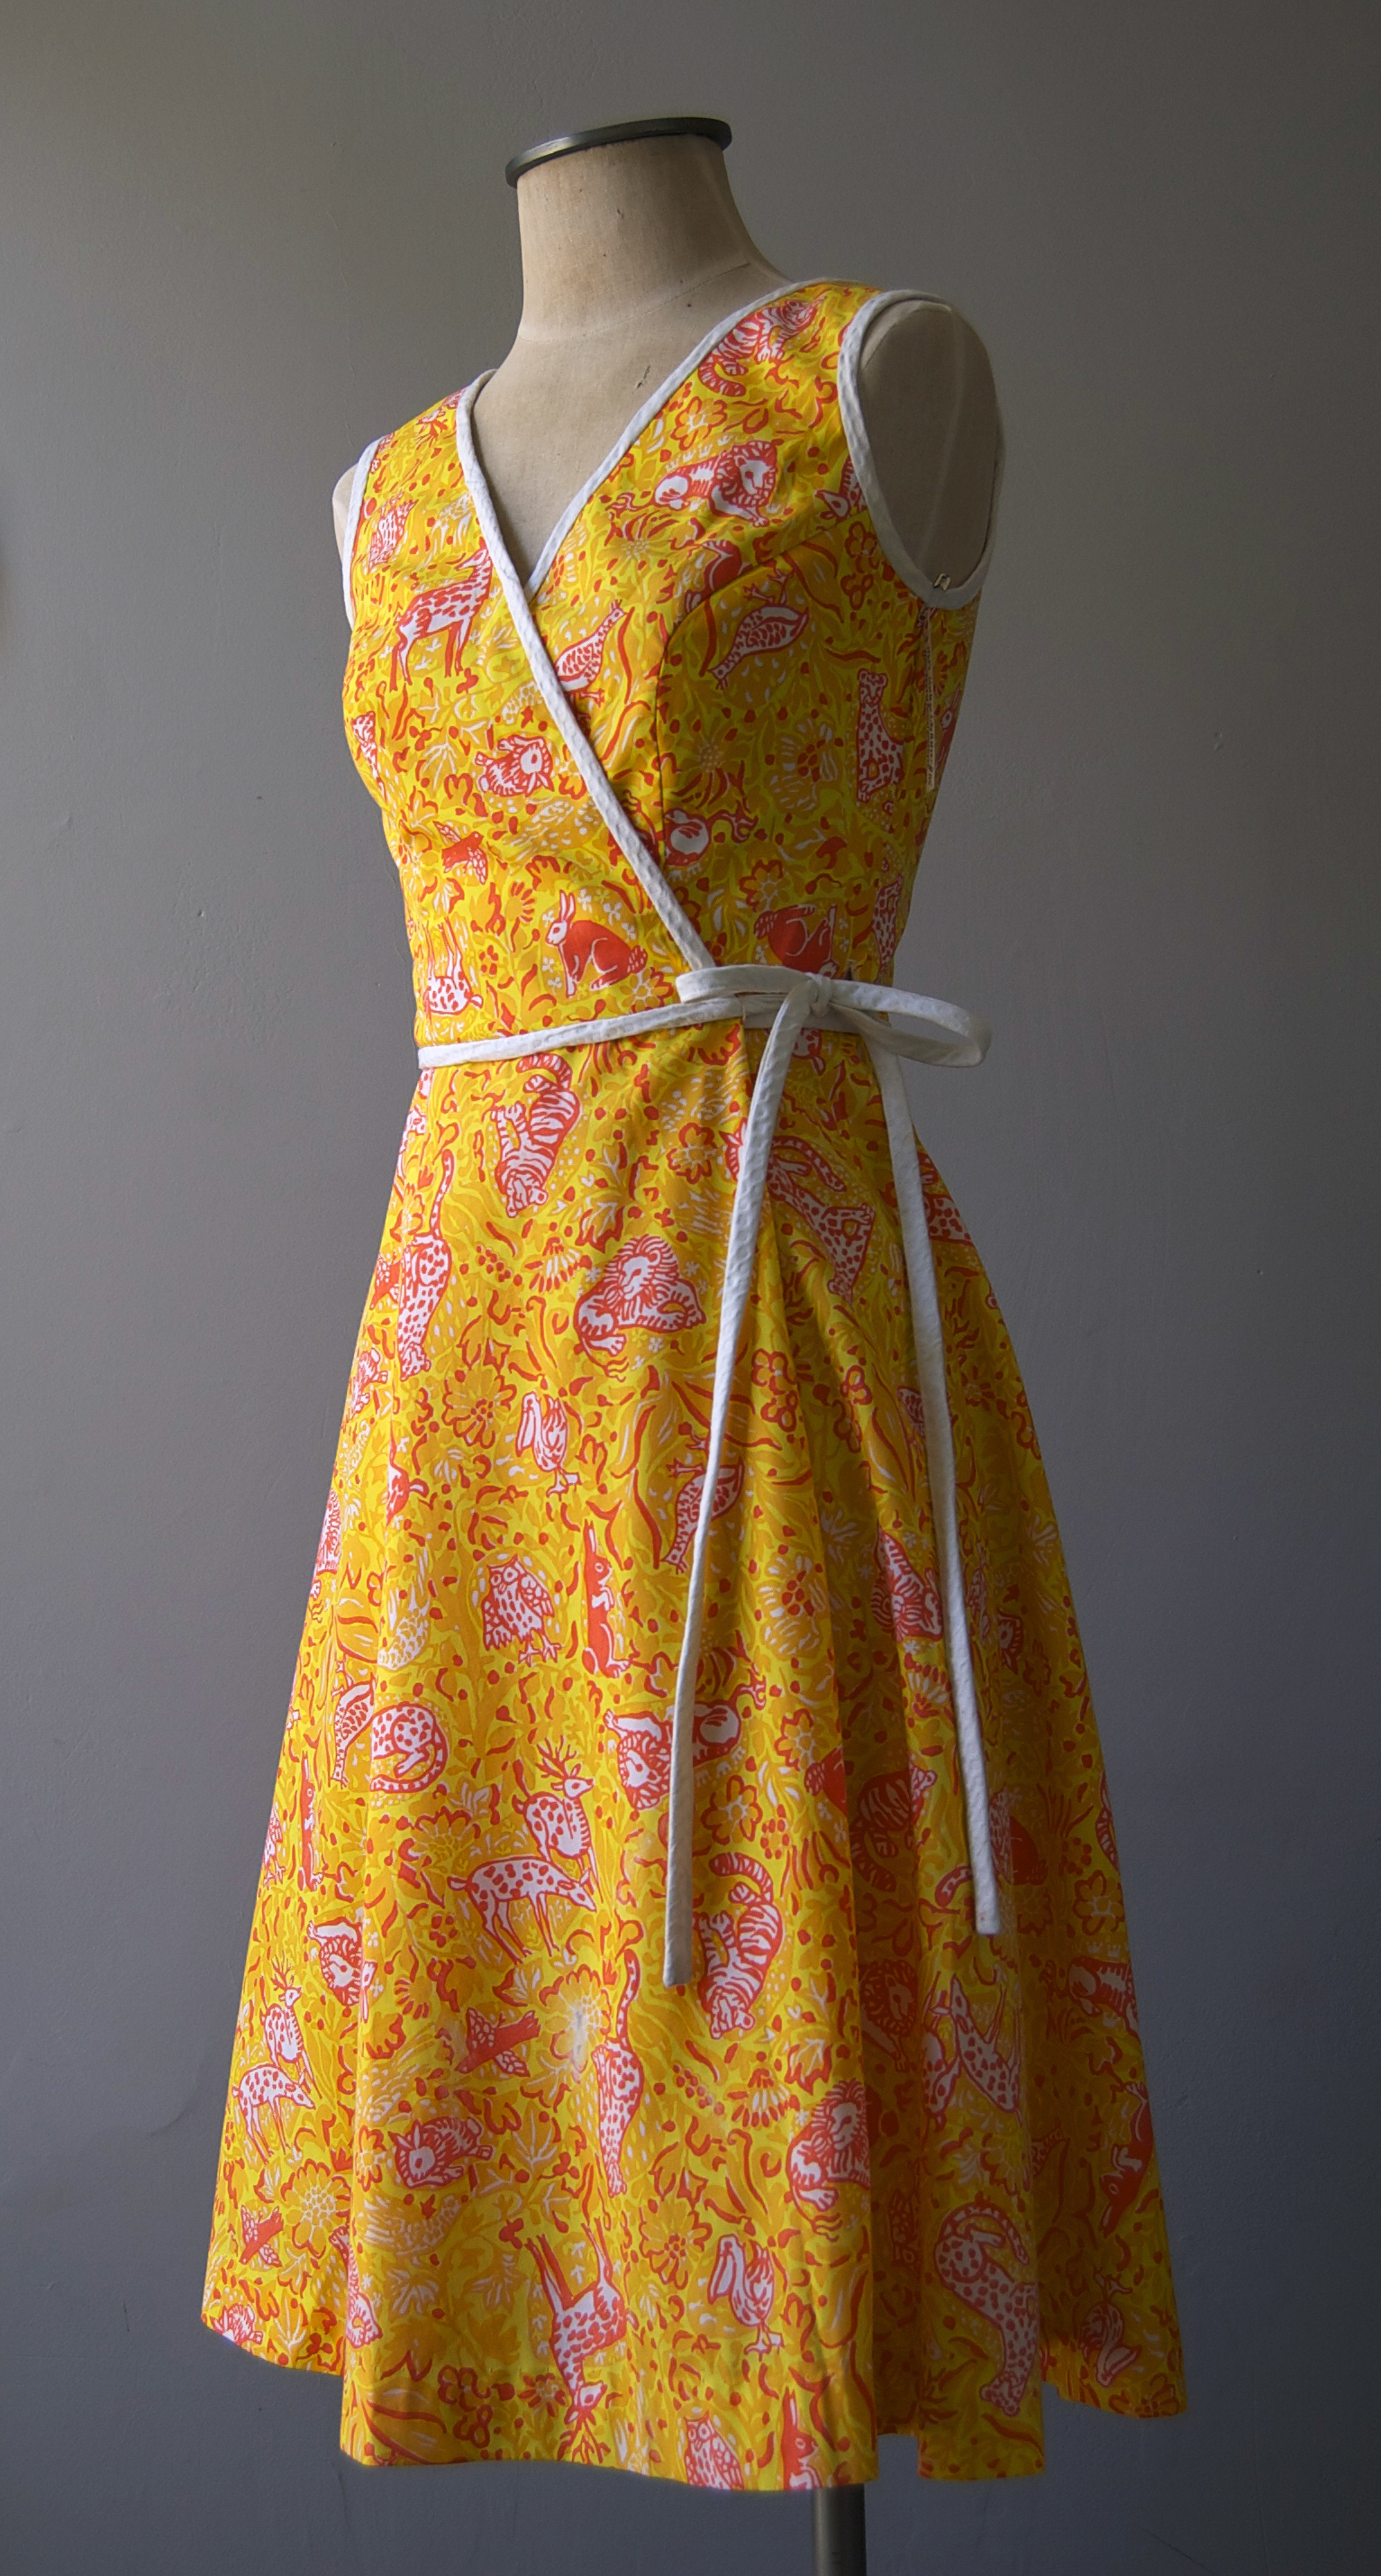 animalorangewrapdress.jpg